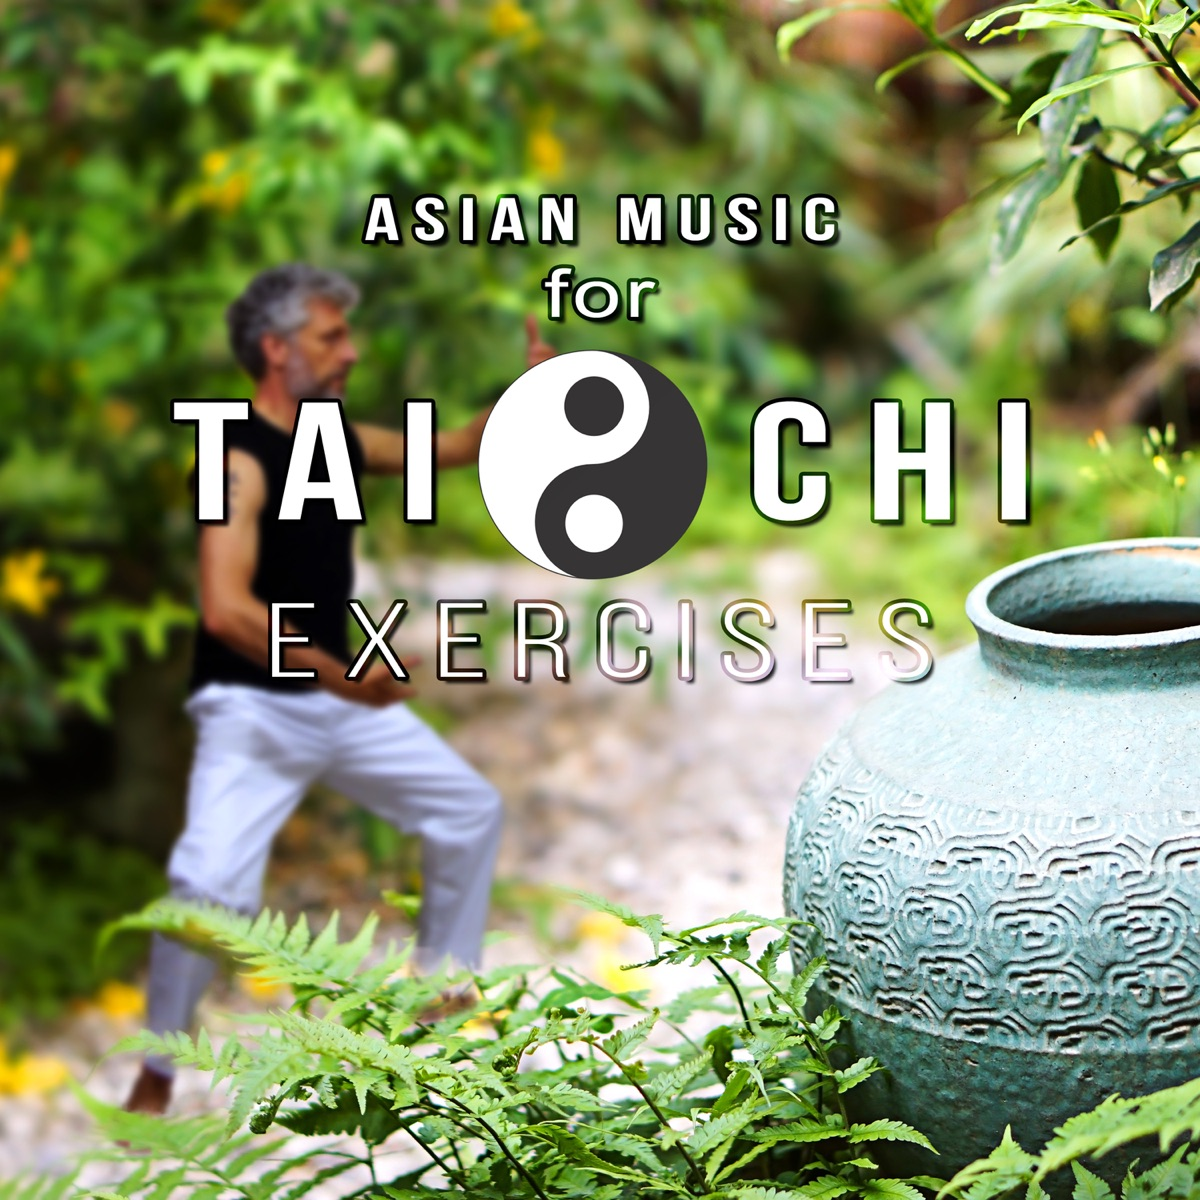 Asian Music for Tai Chi Exercises: Qi Gong, Oriental Sounds for Zen